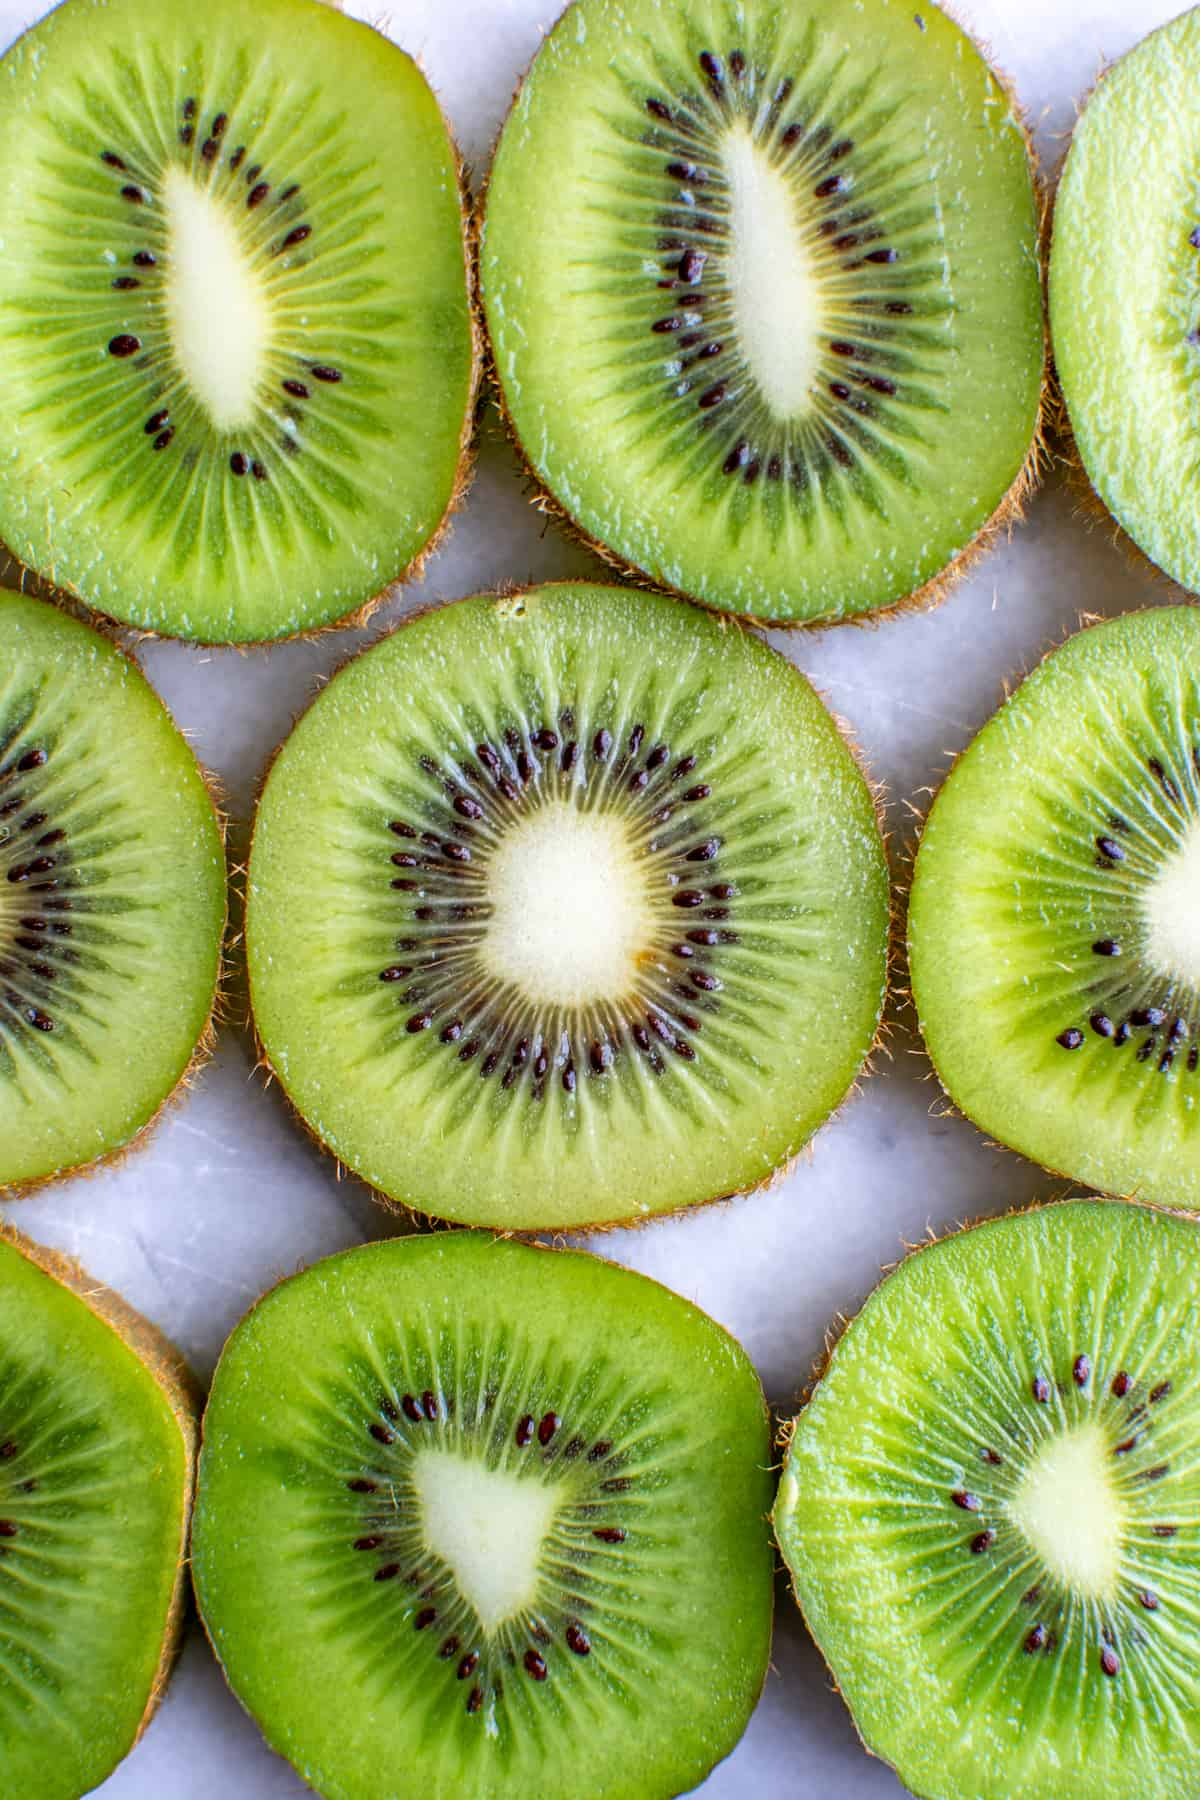 A series of 9 pieces of sliced kiwi all in a line.